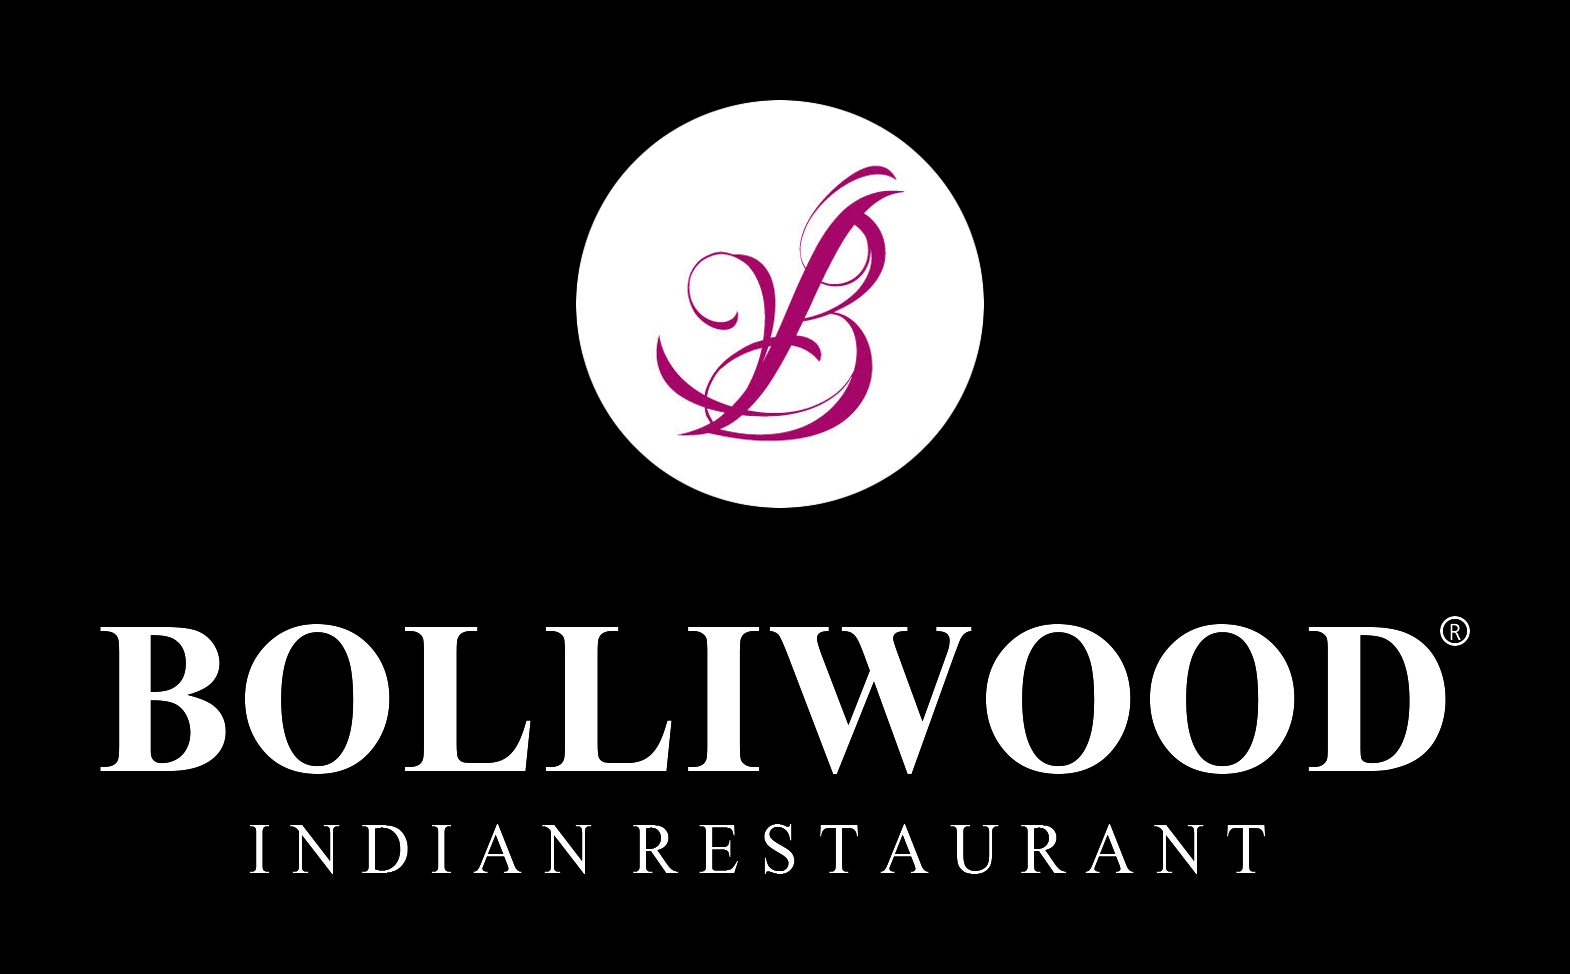 Bolliwood - popular Indian restaurant chain of Auckland